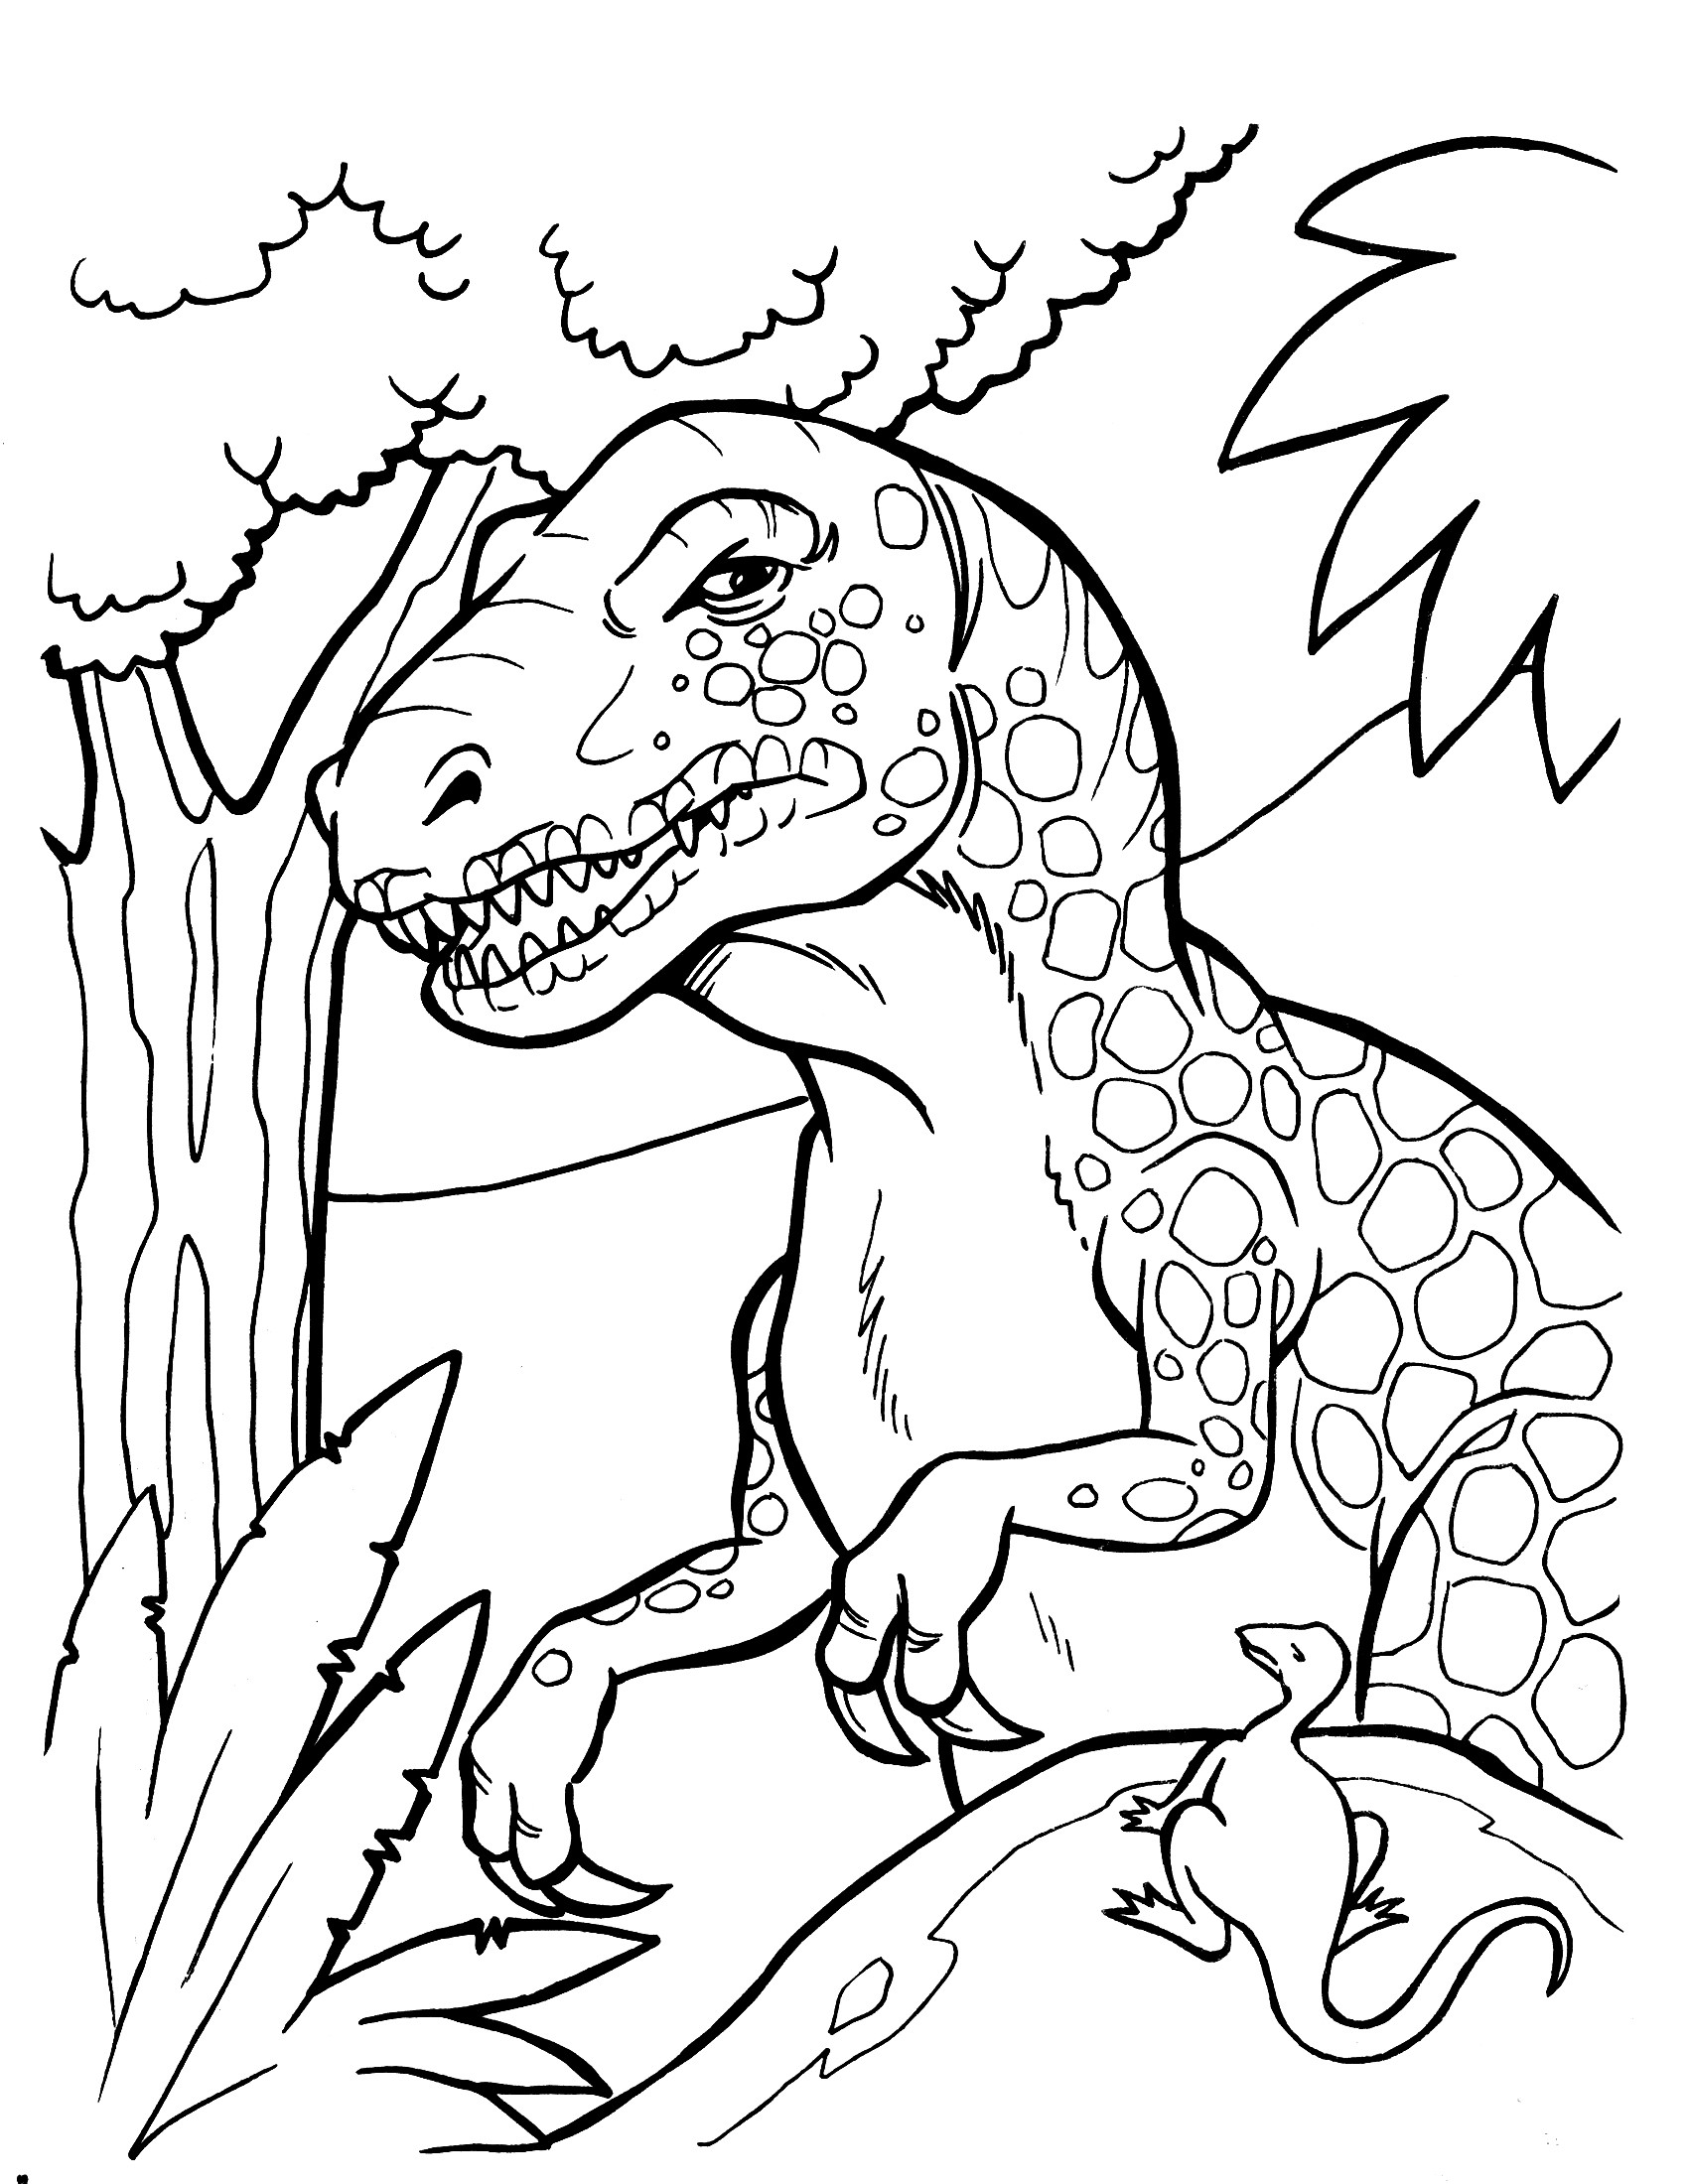 Free Coloring Sheets Dinosaurs  Dinosaur Coloring Pages